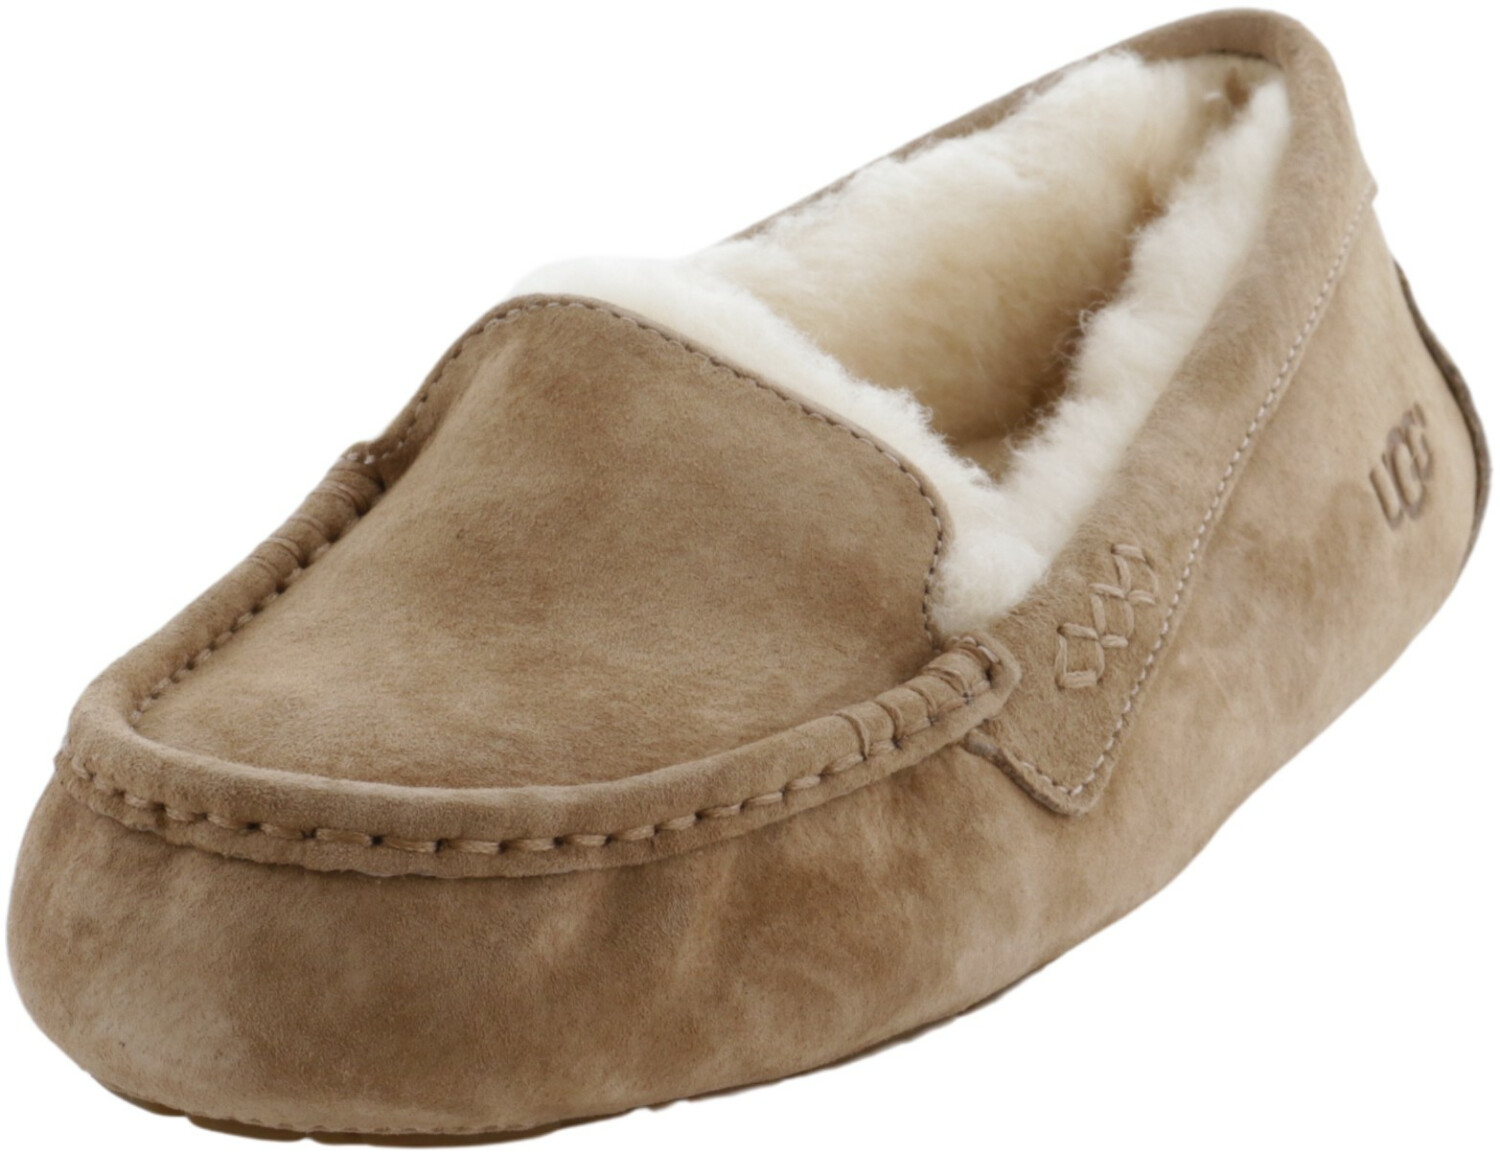 Ugg Women's Ansley Fawn Ankle-High Suede Slipper - 7M